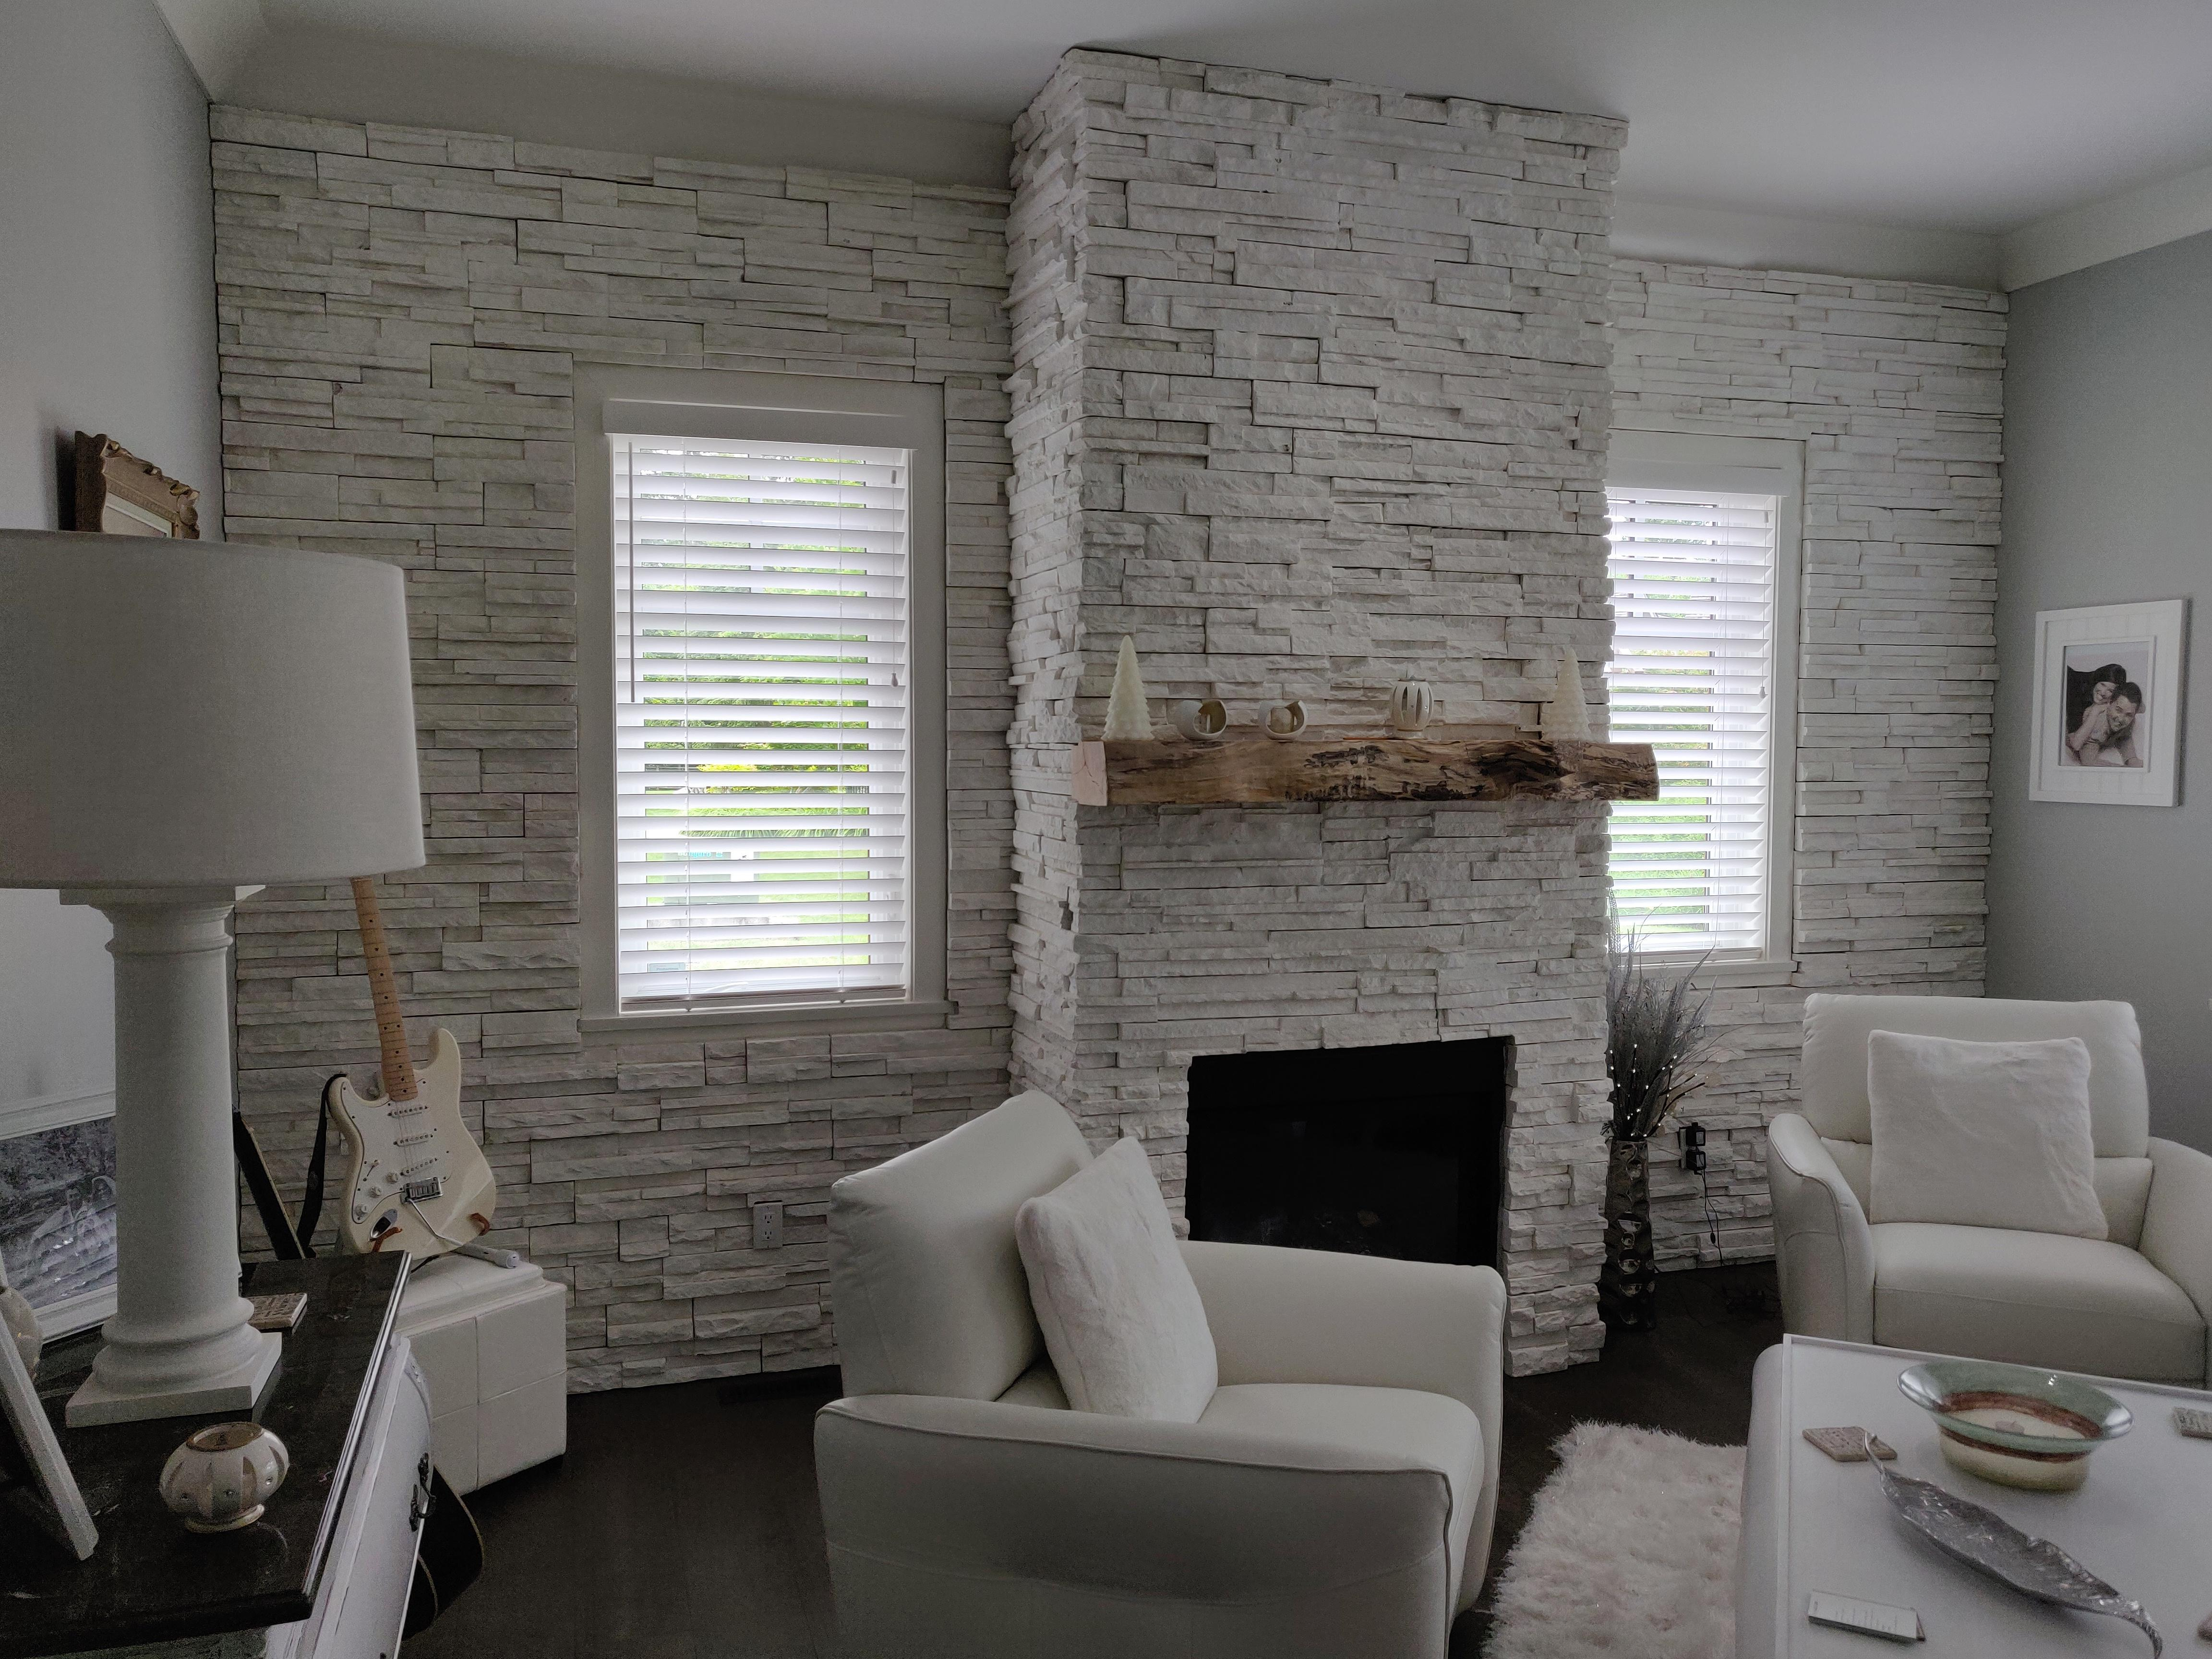 Budget Blinds of Delta, South Surrey and White Rock in Delta: Faux Wood blinds to compliment the clean white look of a custom fireplace wall